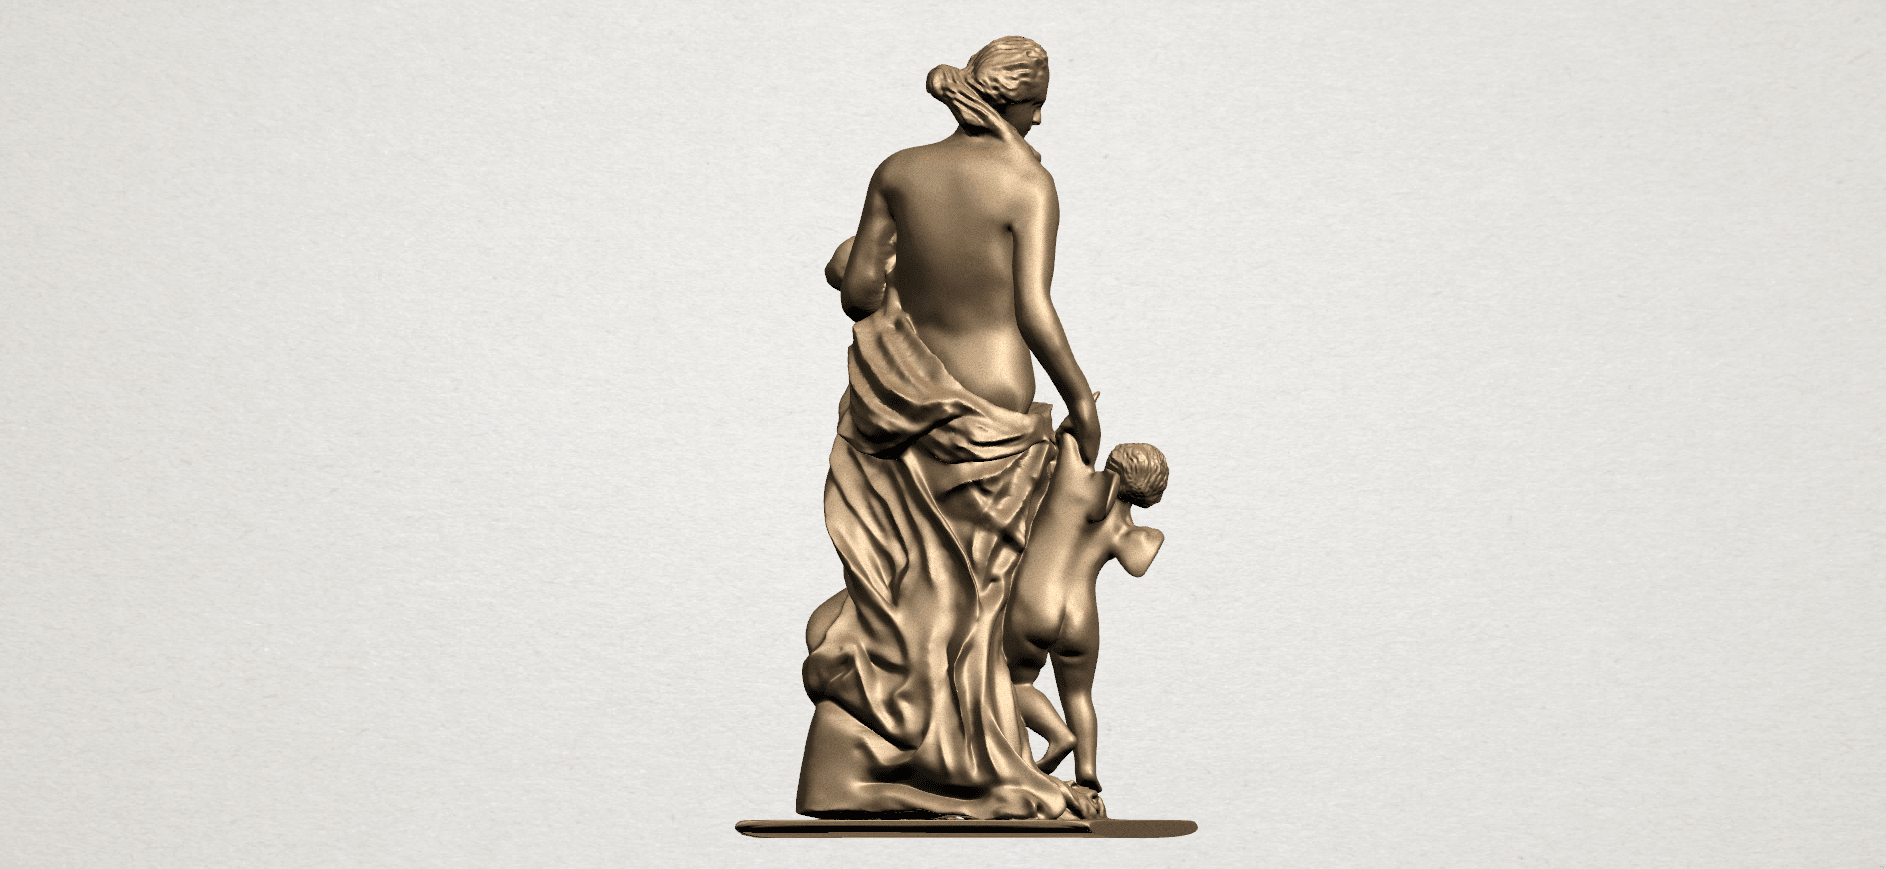 Mother and Child (v) A05.png Download free STL file Mother and Child  05 • 3D printable model, GeorgesNikkei